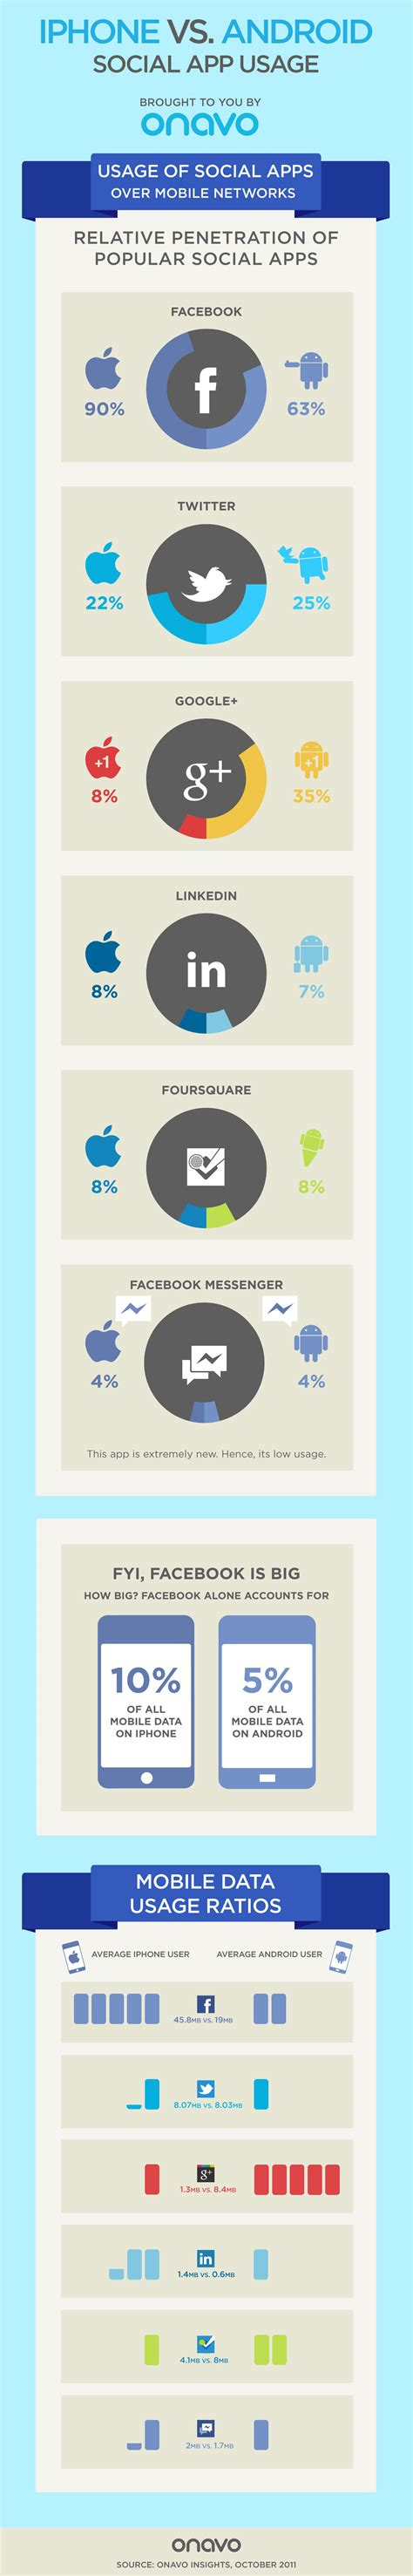 iphones vs android social app usage iphone vs android